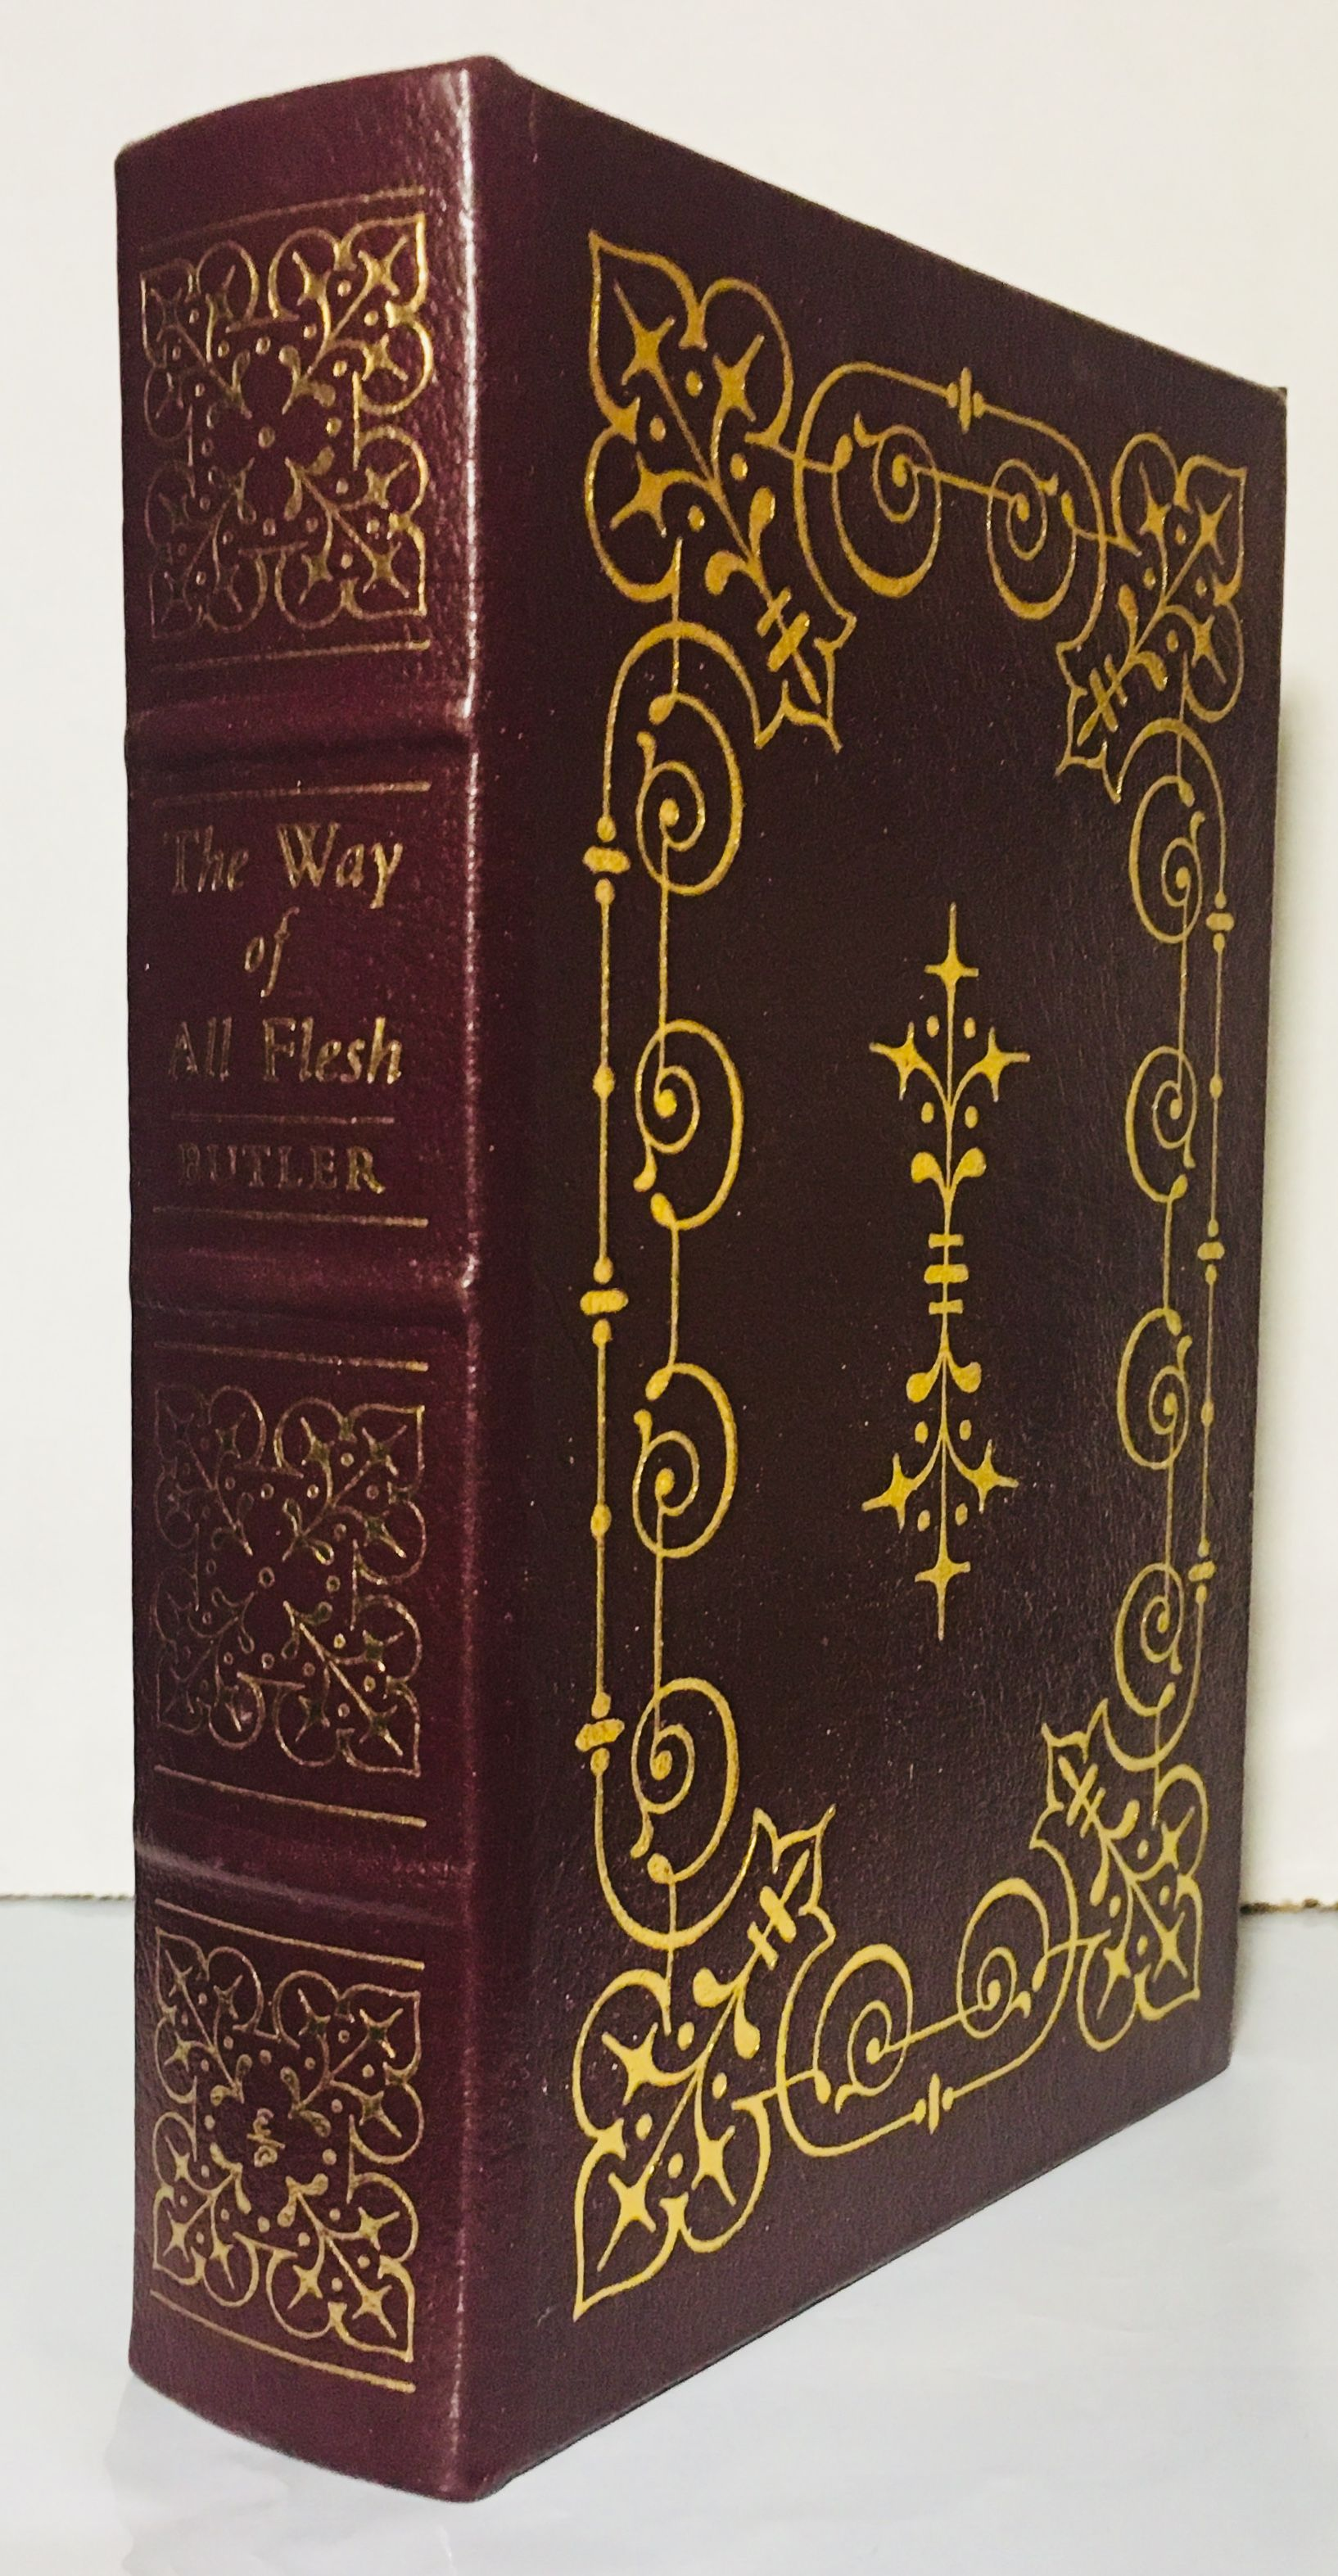 The Way of All Flesh (Collector's Edition). The 100 Greatest Books Ever Written, Butler Samuel